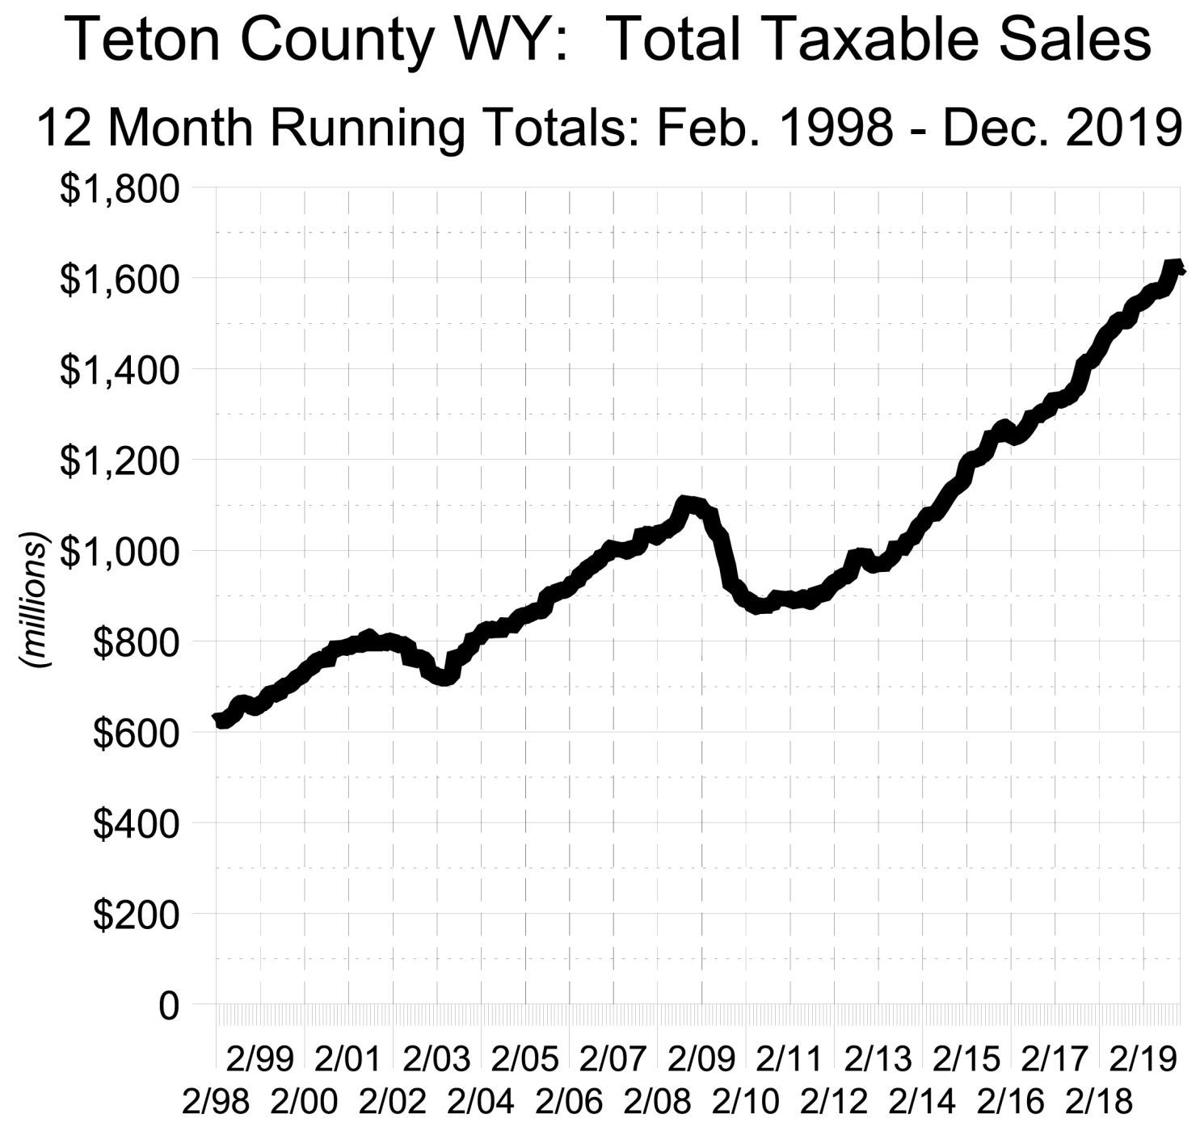 Teton County, WY: Total Taxable Sales